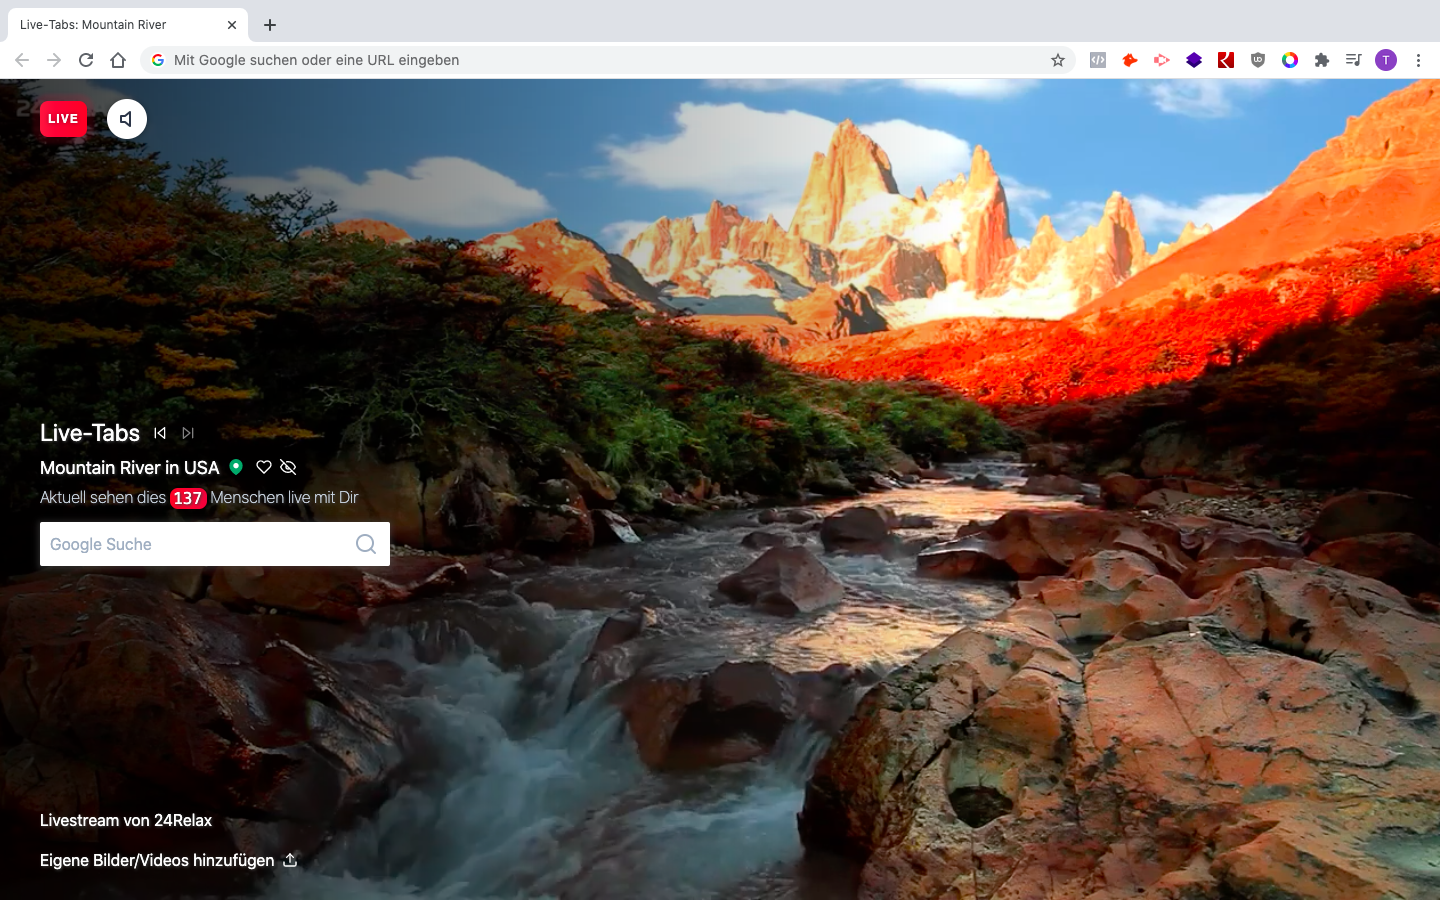 Livestream of a montain river in a browser tab